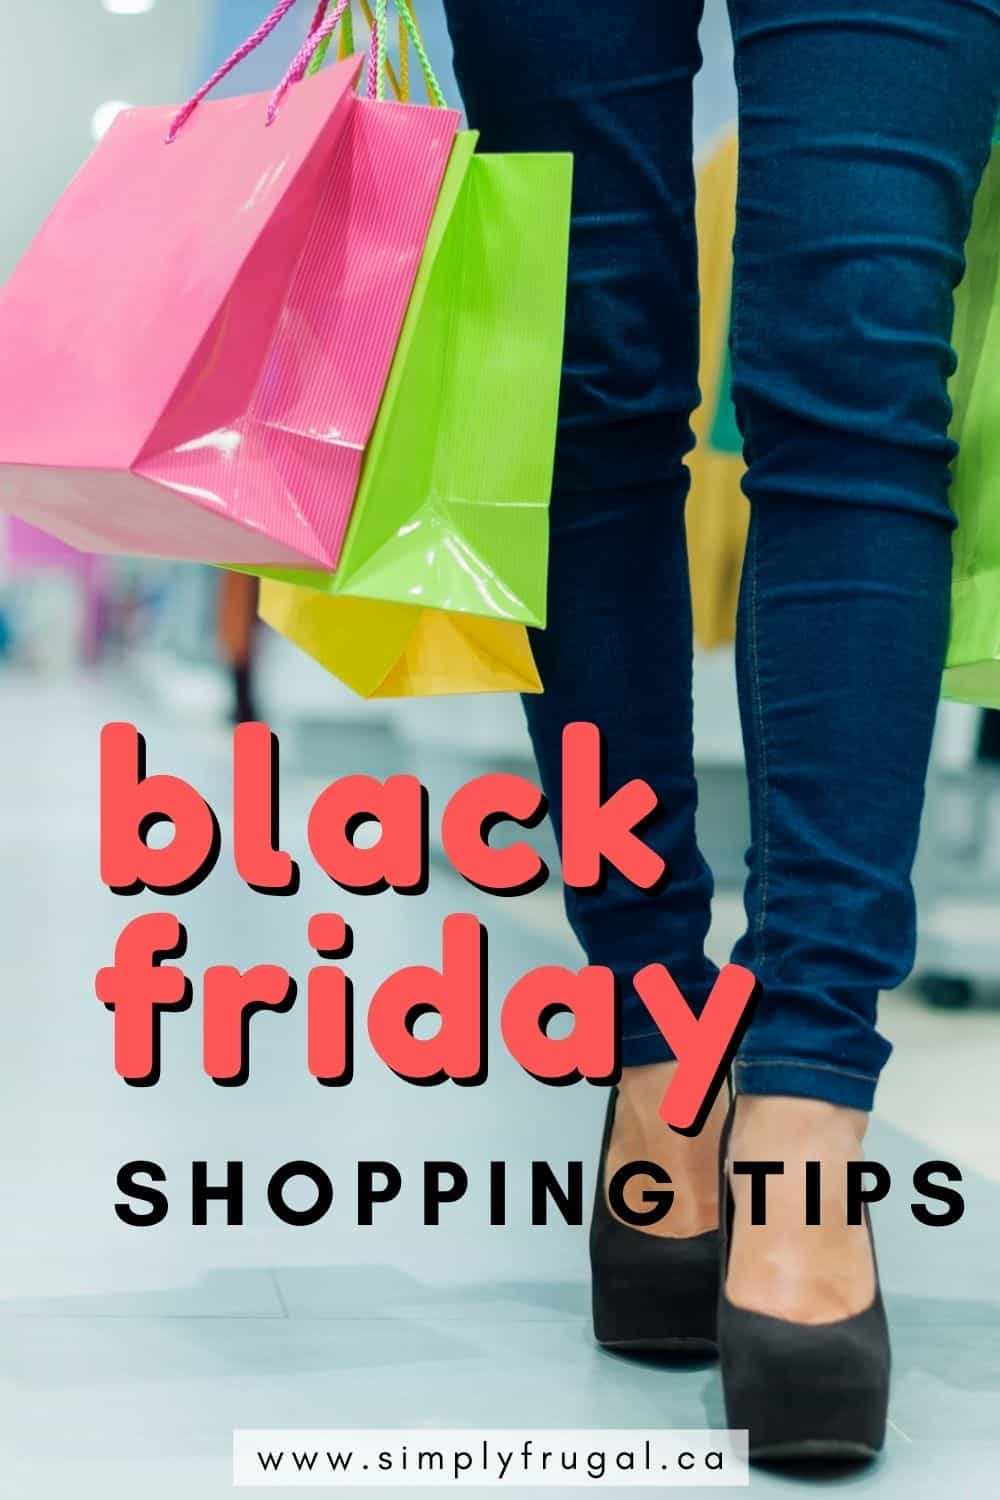 Black Friday. Perhaps the biggest shopping day of the year is nearly upon us. Be prepared and find excellent Black Friday Shopping tips here!